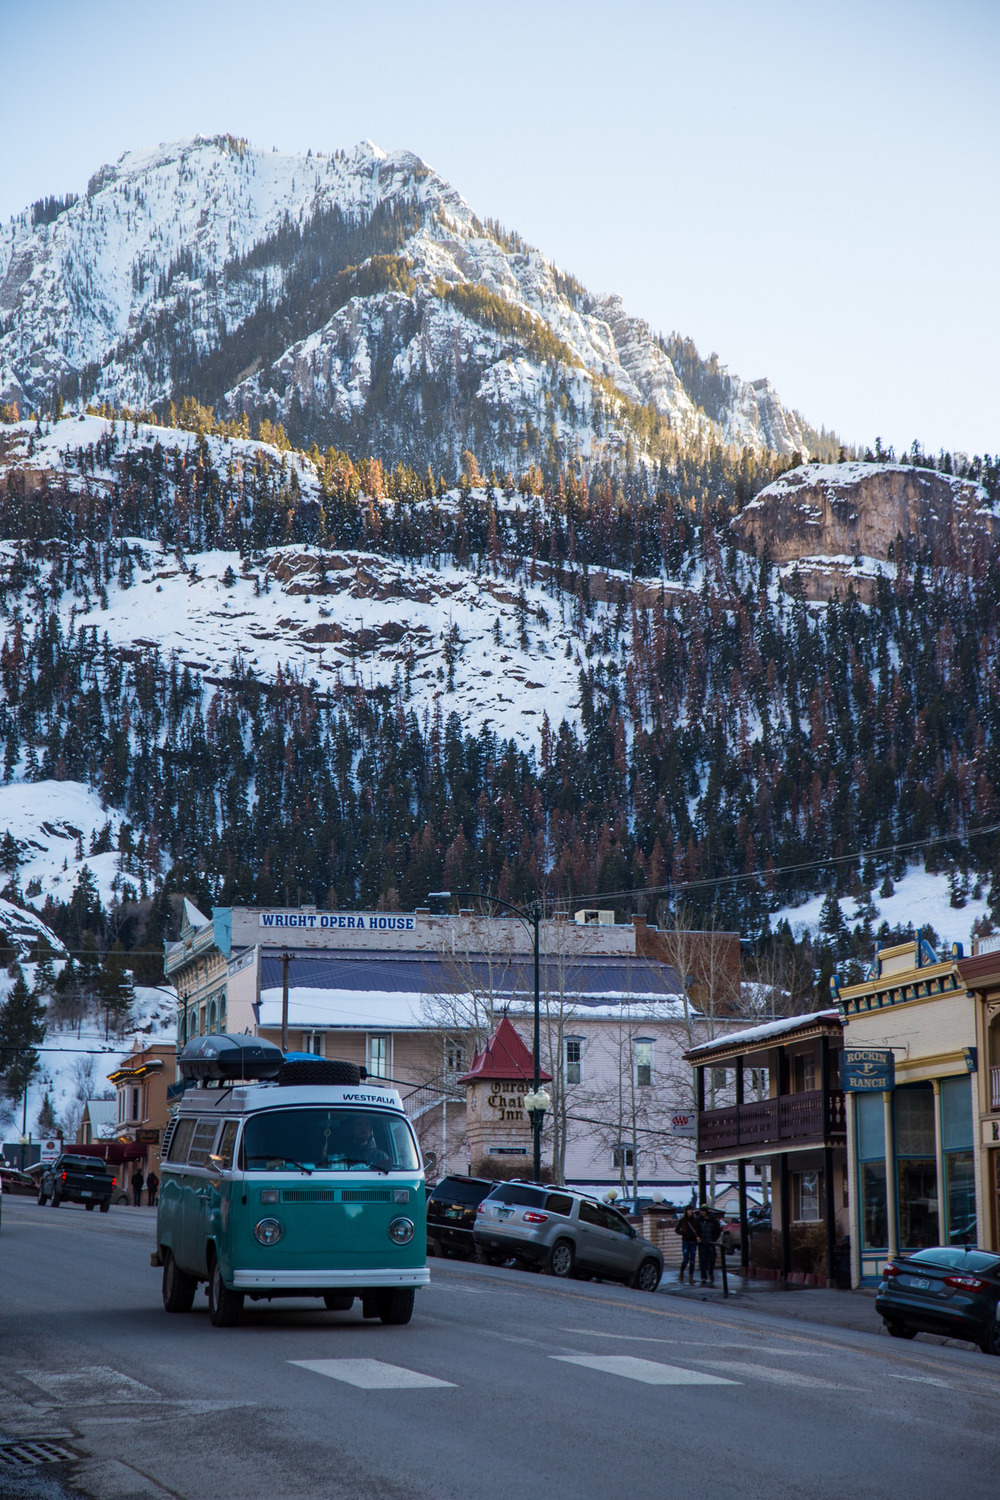 The quaint little mountain town of Ouray, Colorado.